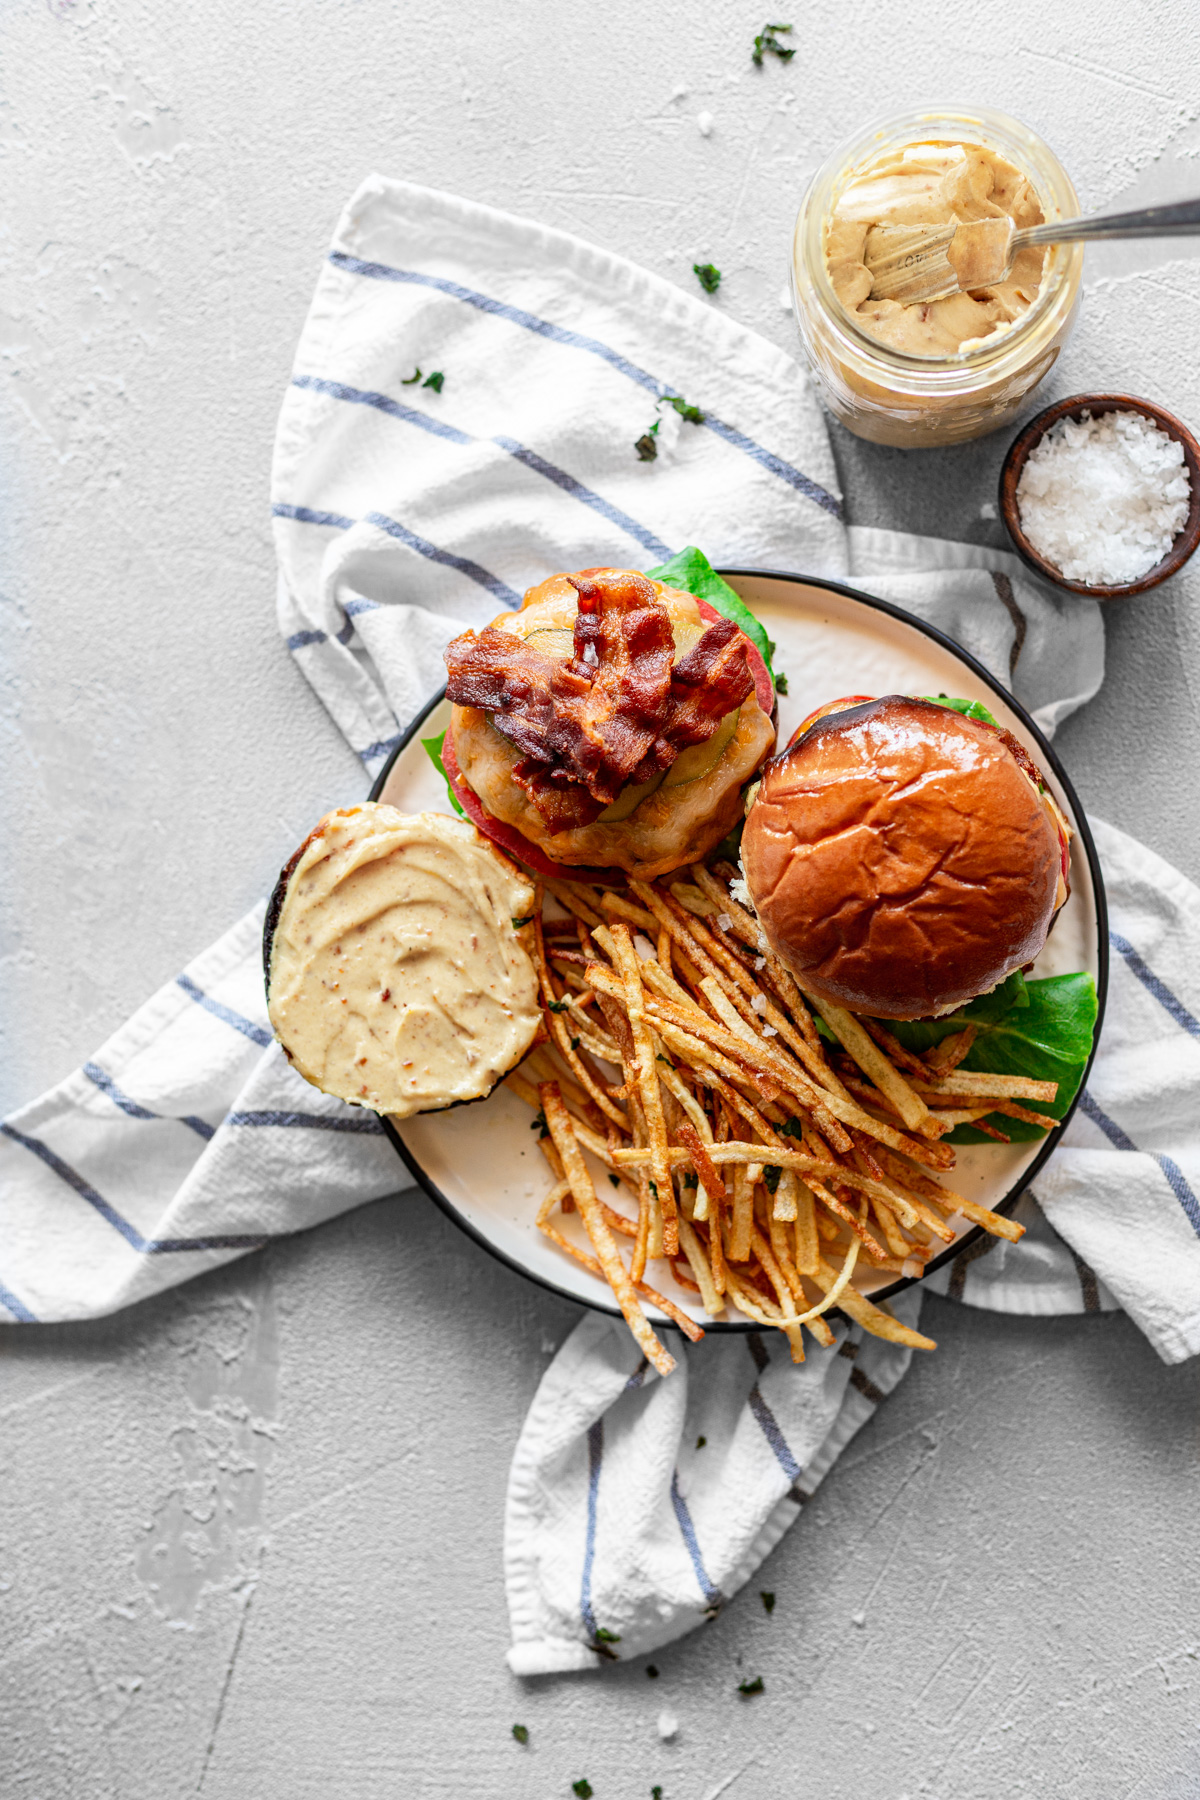 Two bacon burgers with bacon, cheese, bacon aioli, lettuce & tomato with thin-cut fries